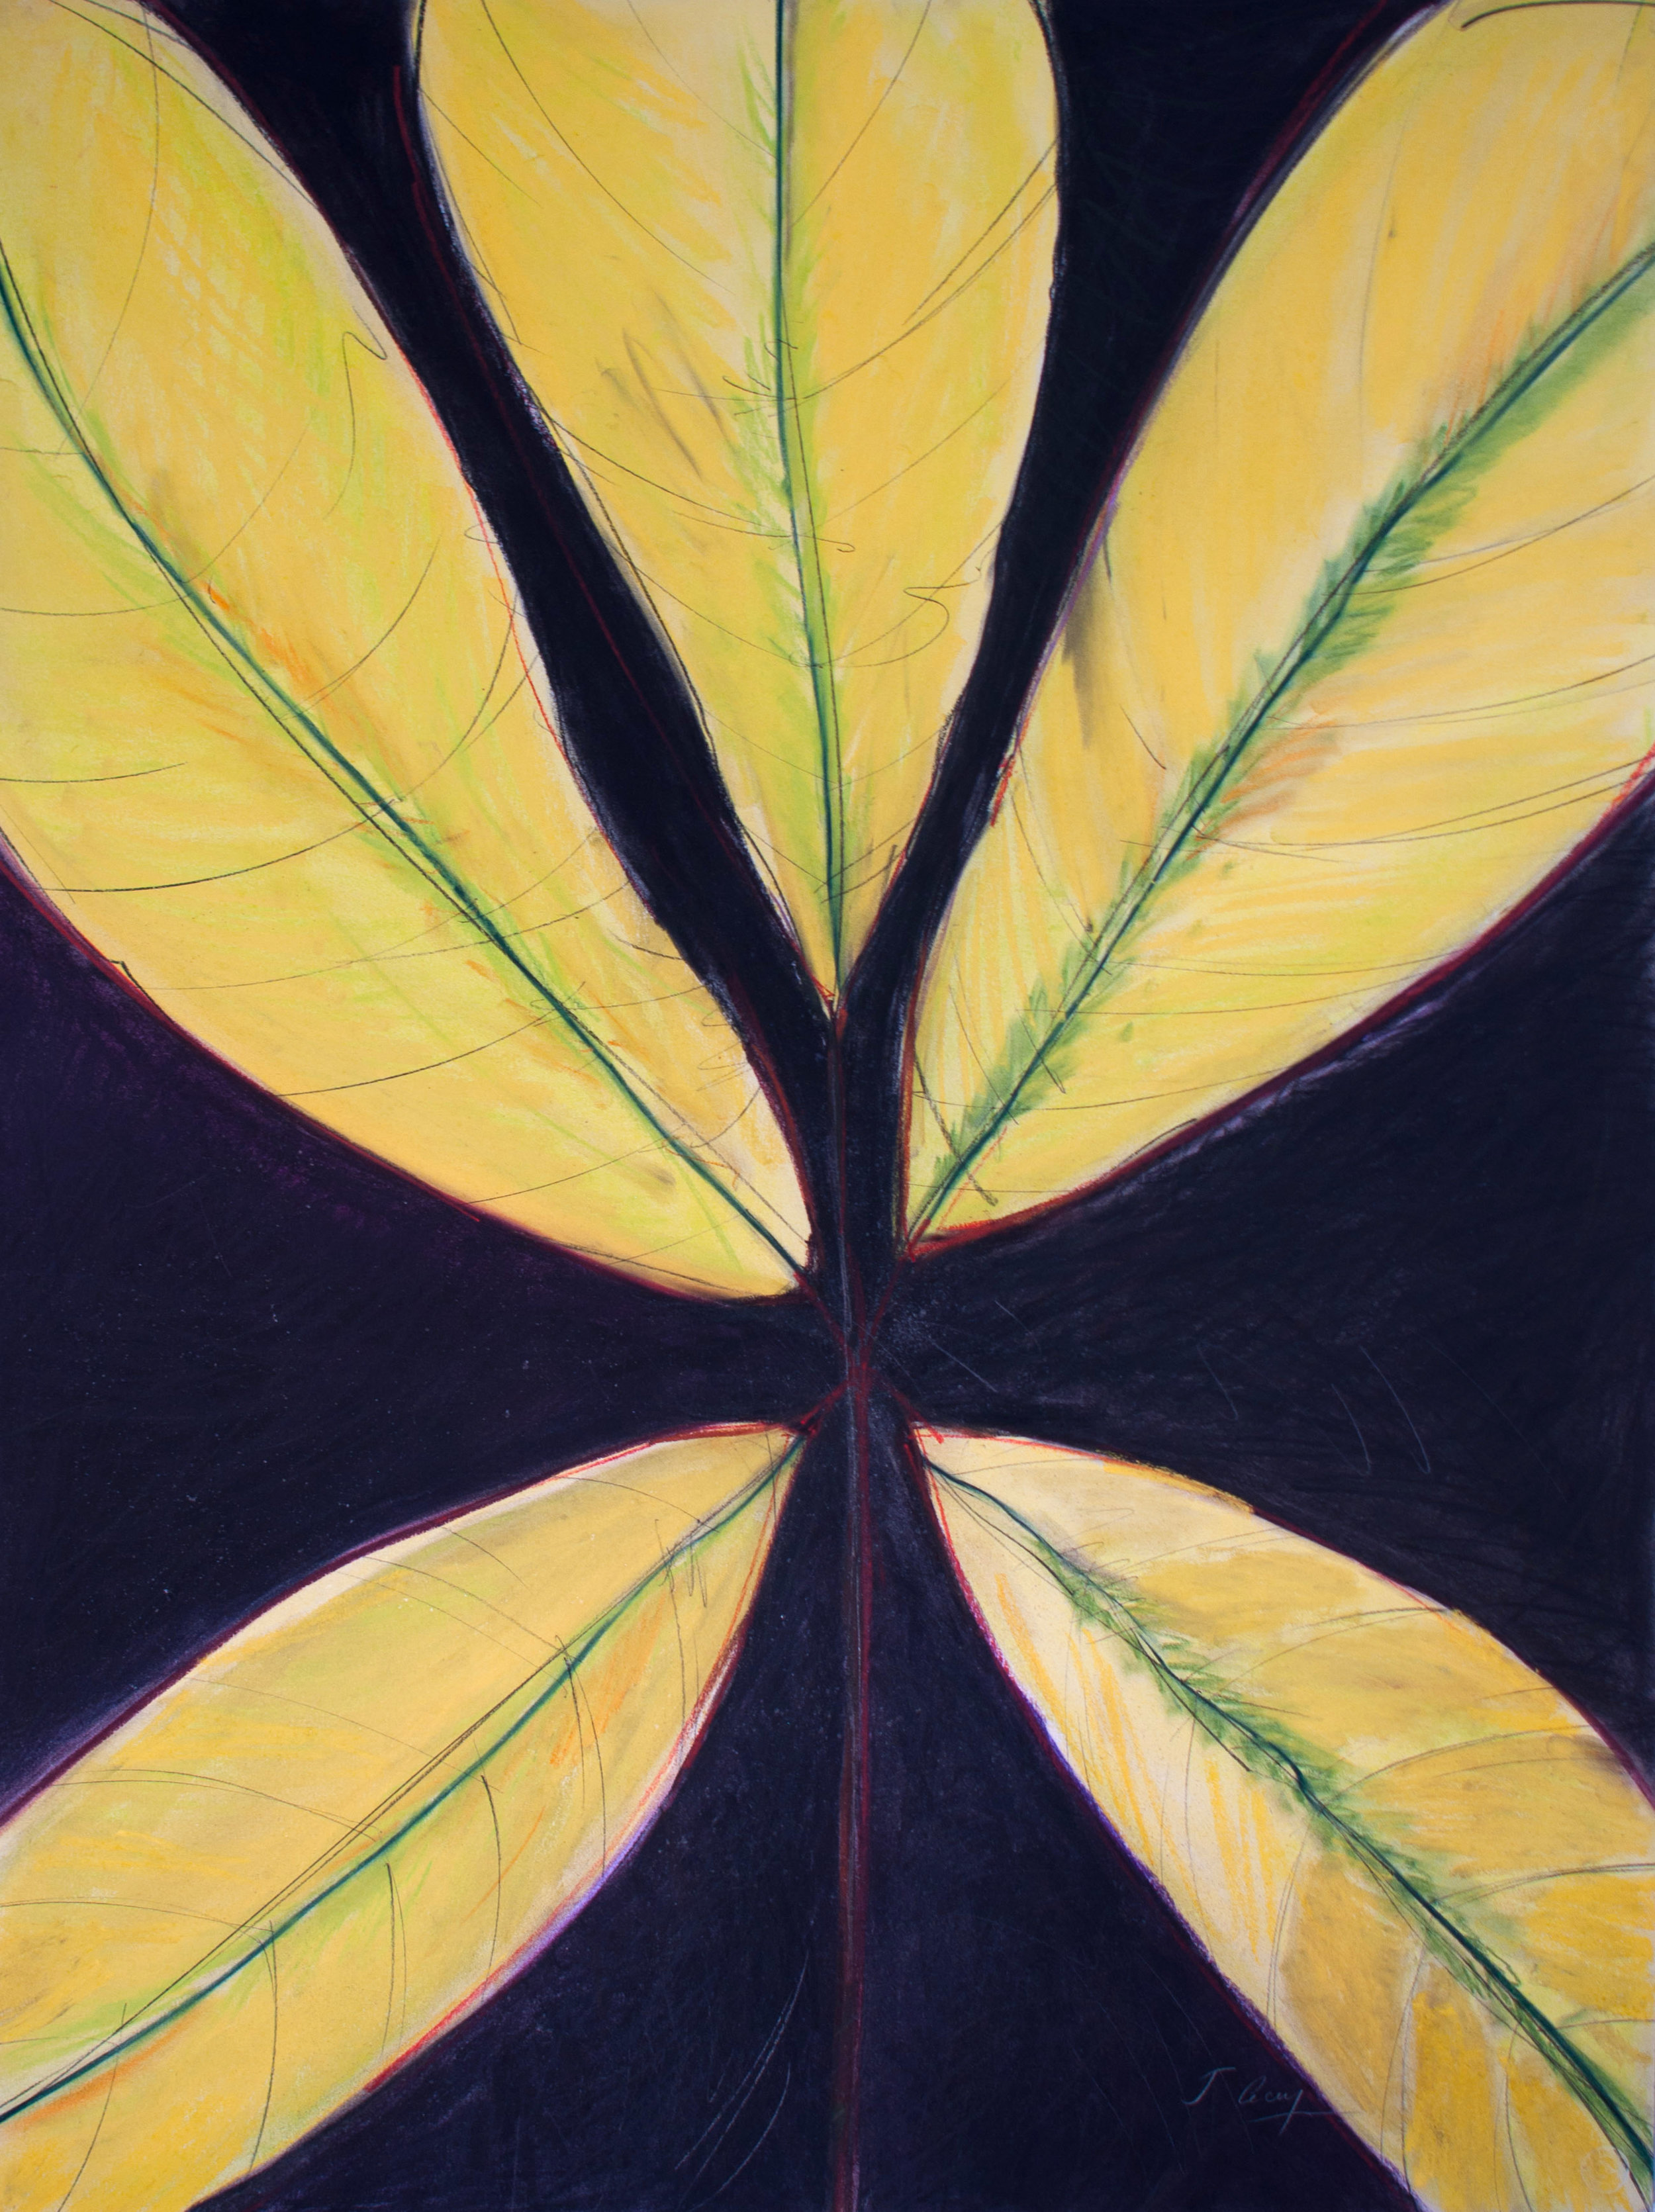 Acey_Jo-Ann__Yellow Leaf_ Pastel, Charcoal and Graphite on Paper, 2013.jpg